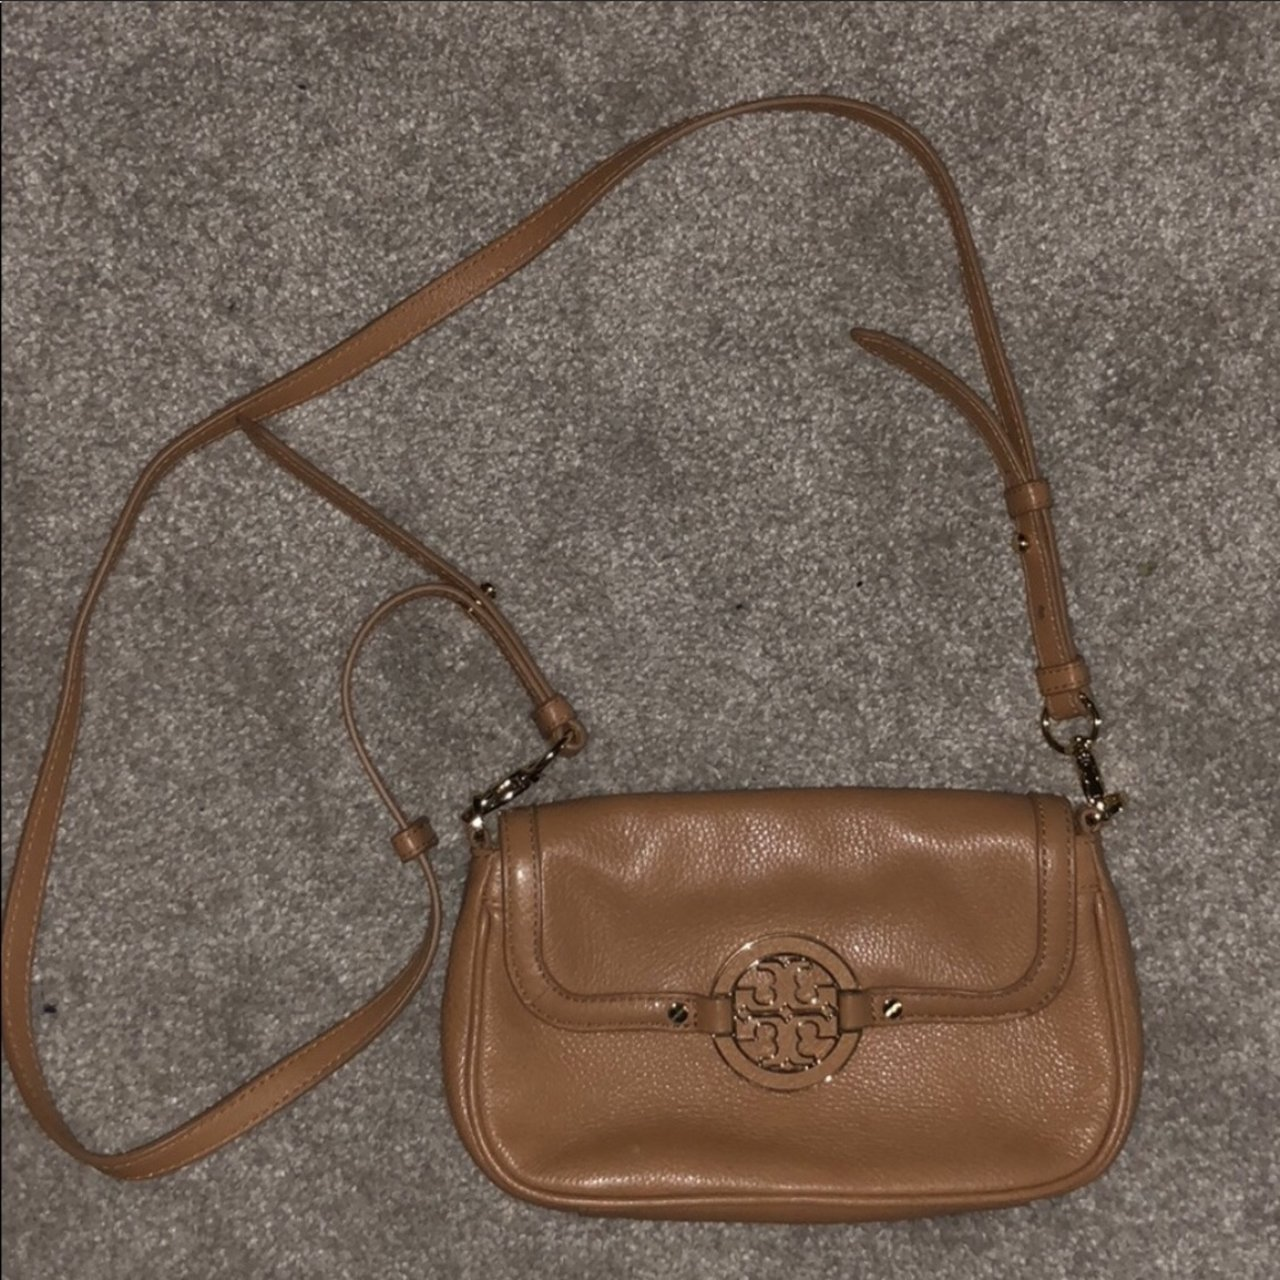 c6eae1be3c9e This tory burch bag is great for every outfit!! Has a holder - Depop